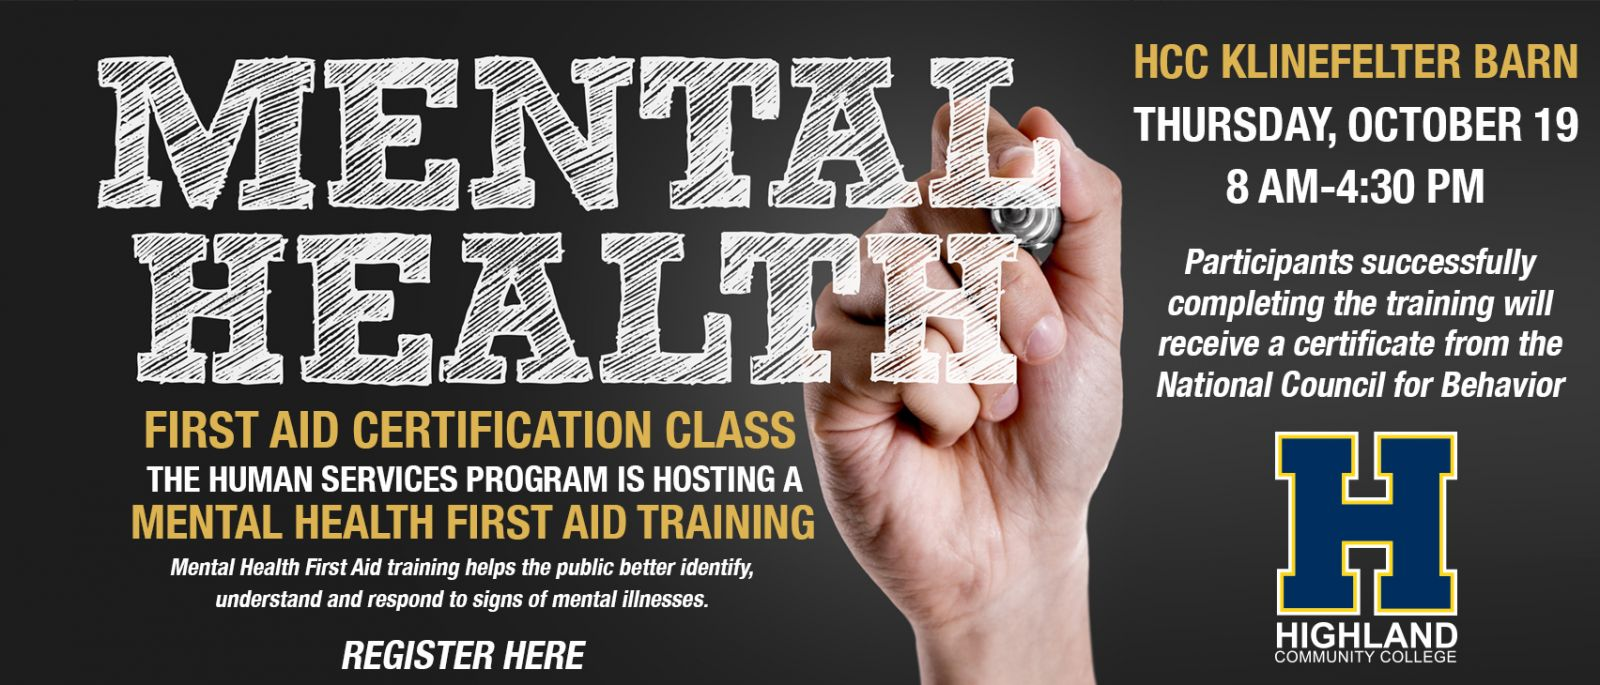 Mental Health First Aid Training Highland Community College My Hcc